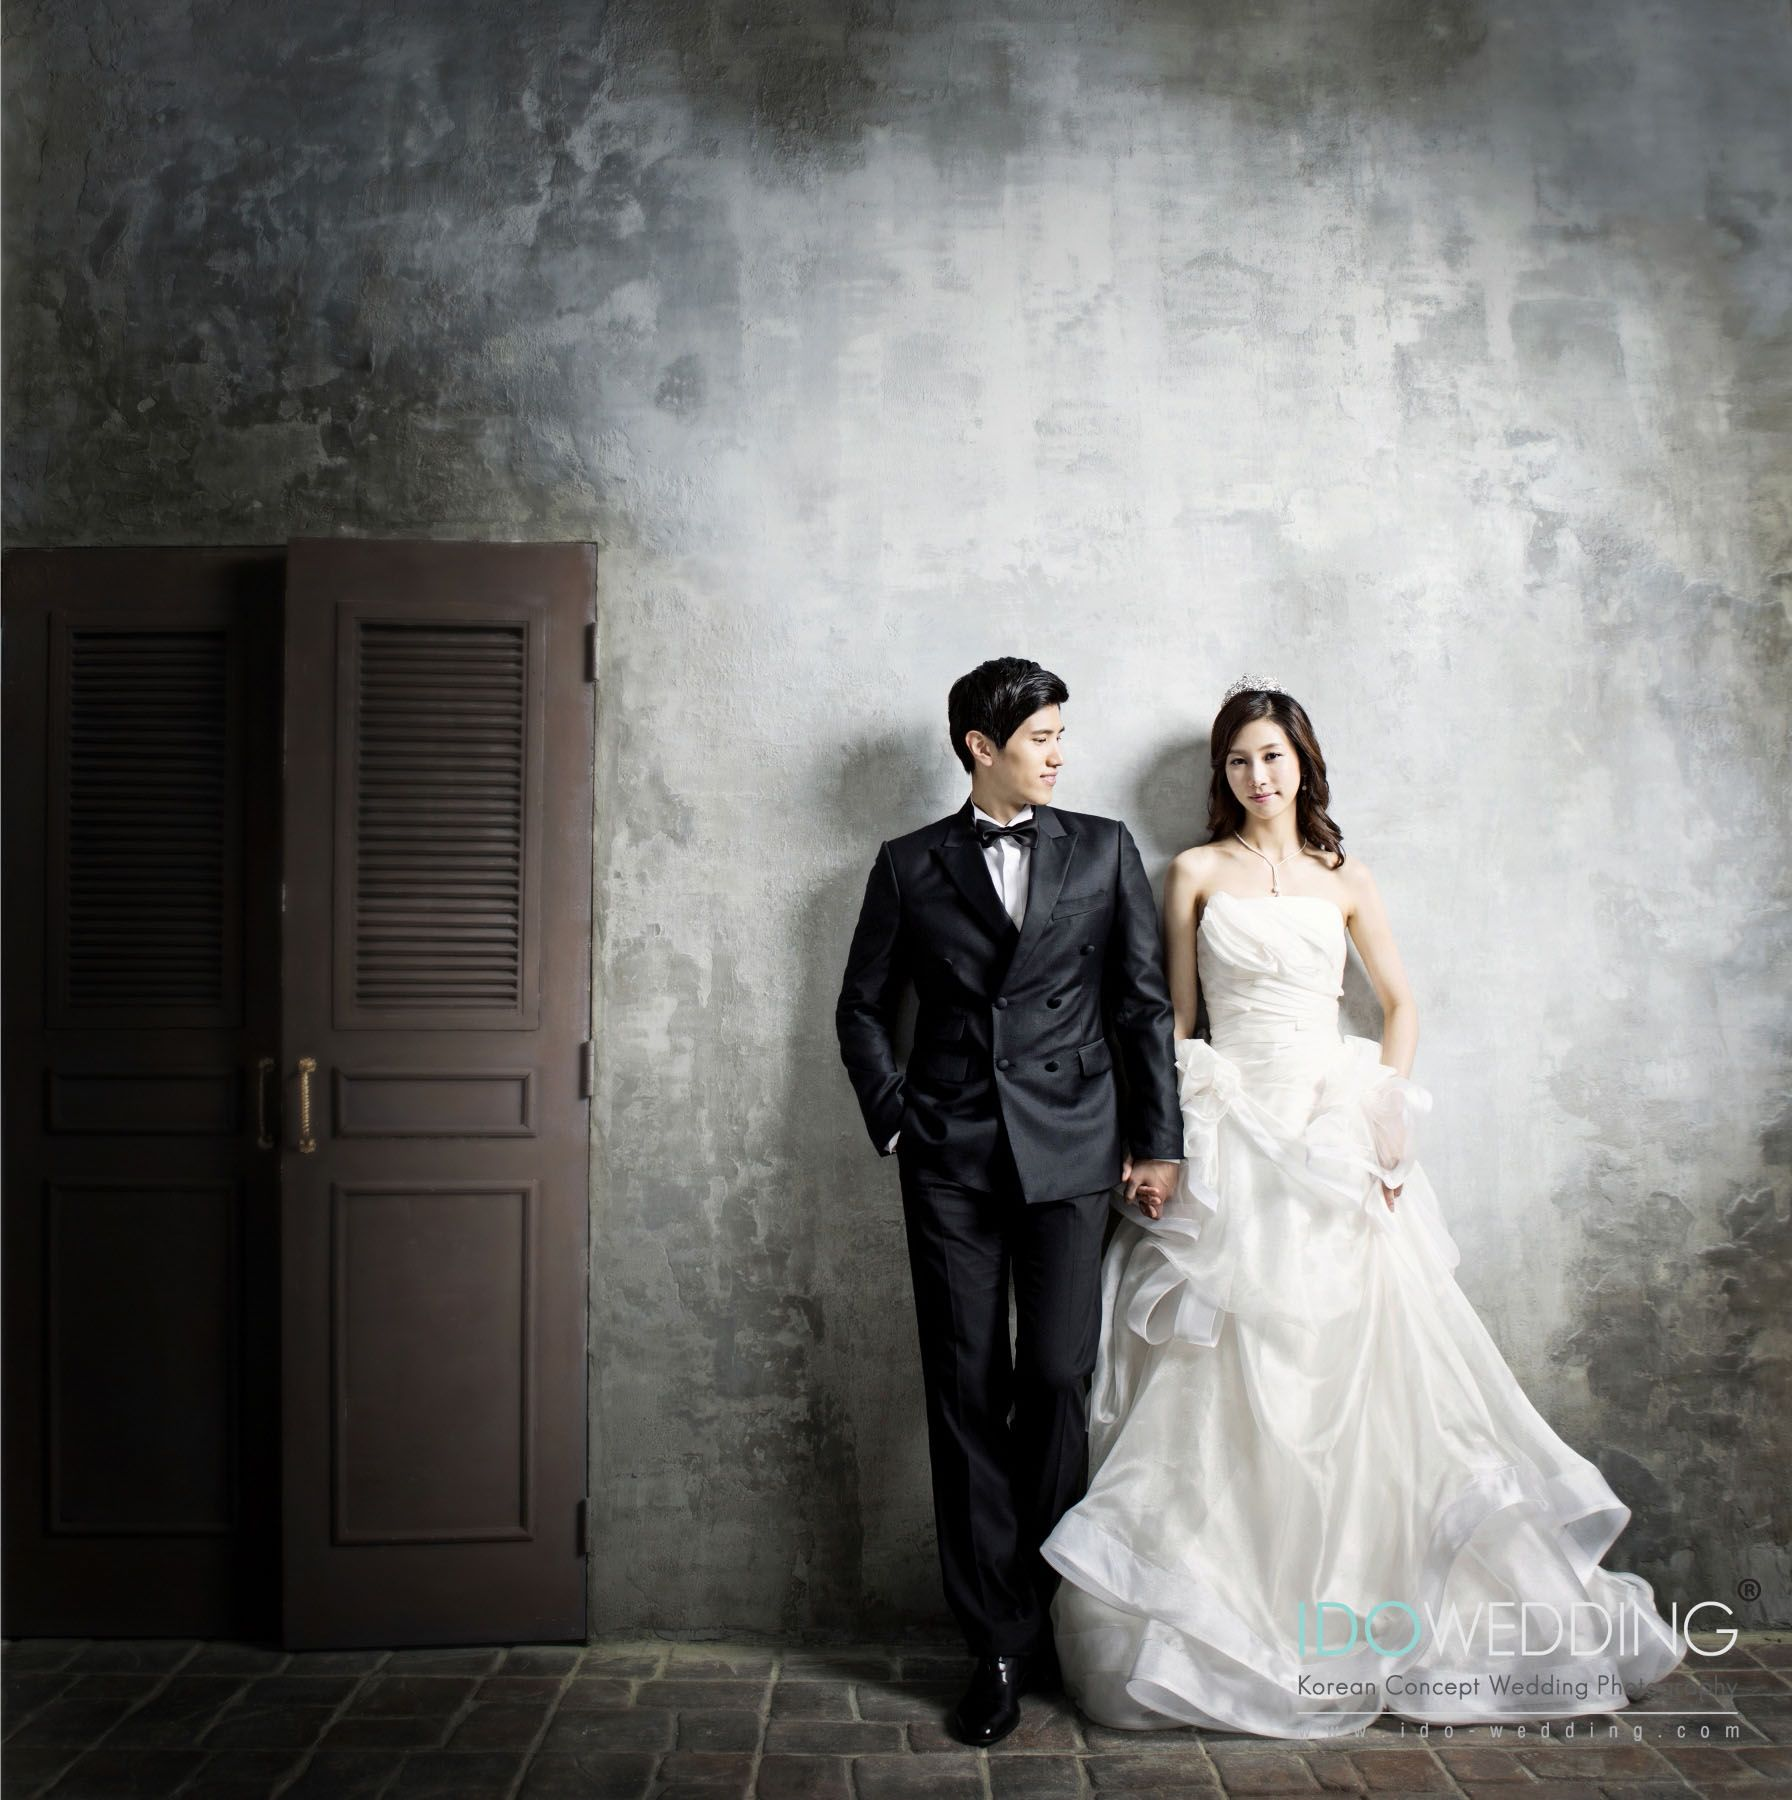 Love This Pre Wedding Industrial Concept Fotografi Pasangan